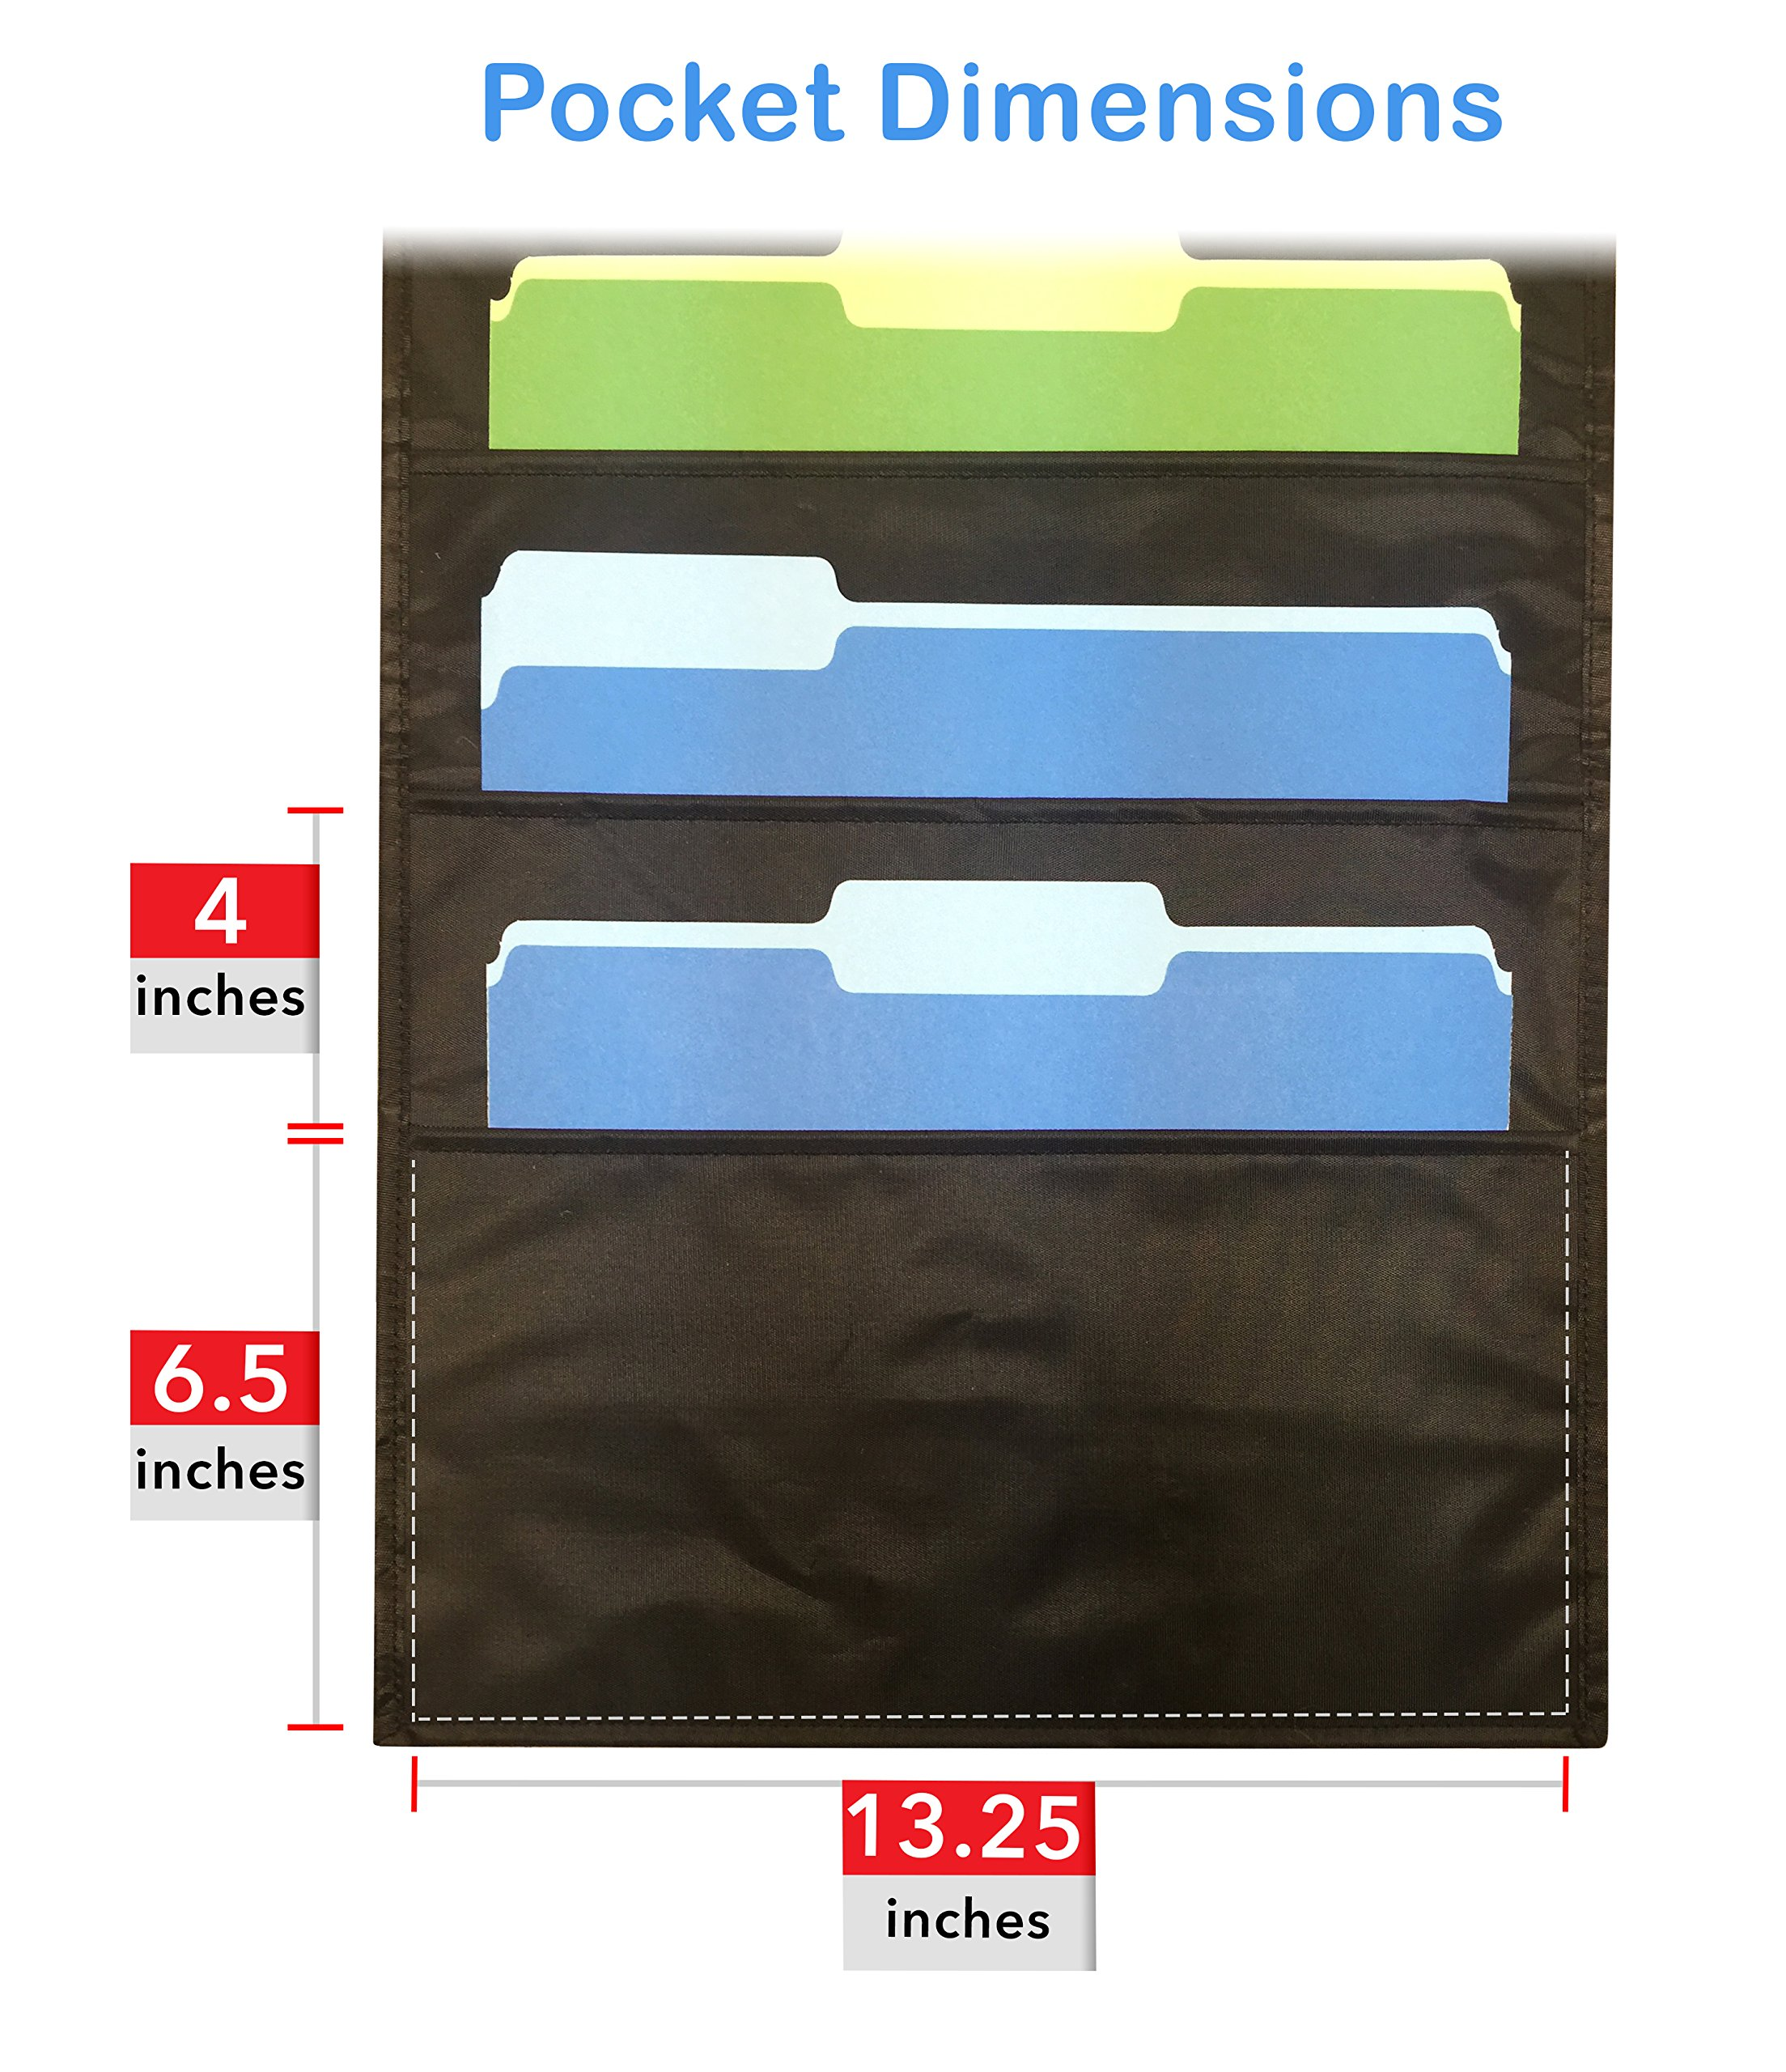 Pack of 2 - Essex Wares Storage Pocket Charts / Ten Pocket Hanging Wall Files - Perfect for Organizing Your Classroom, School, Office and Home (Black) by Essex Wares (Image #2)